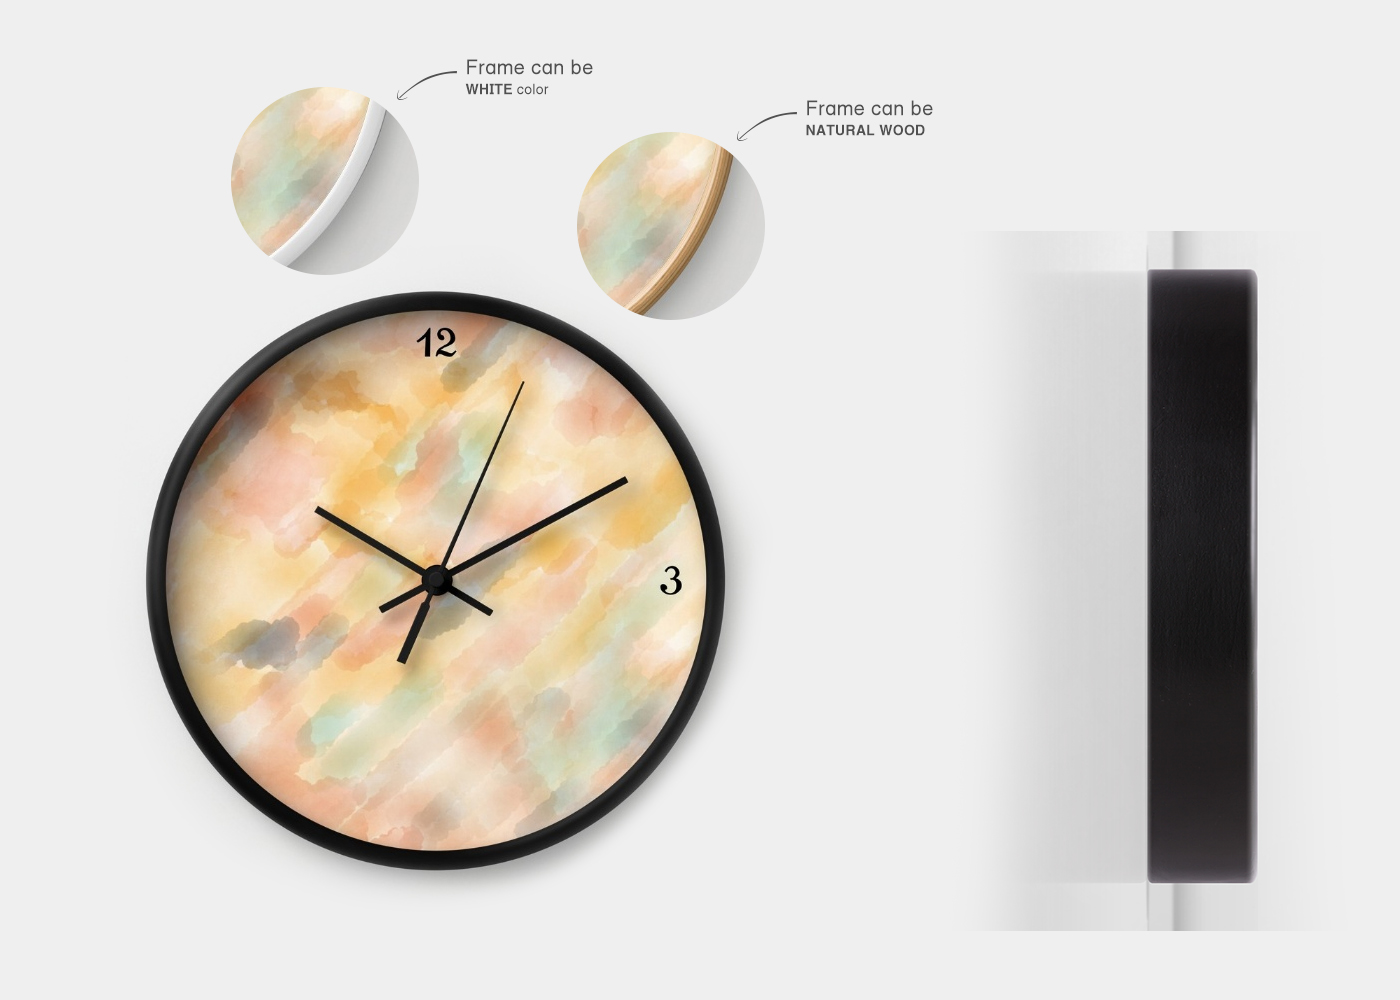 Wall clock with great illustration